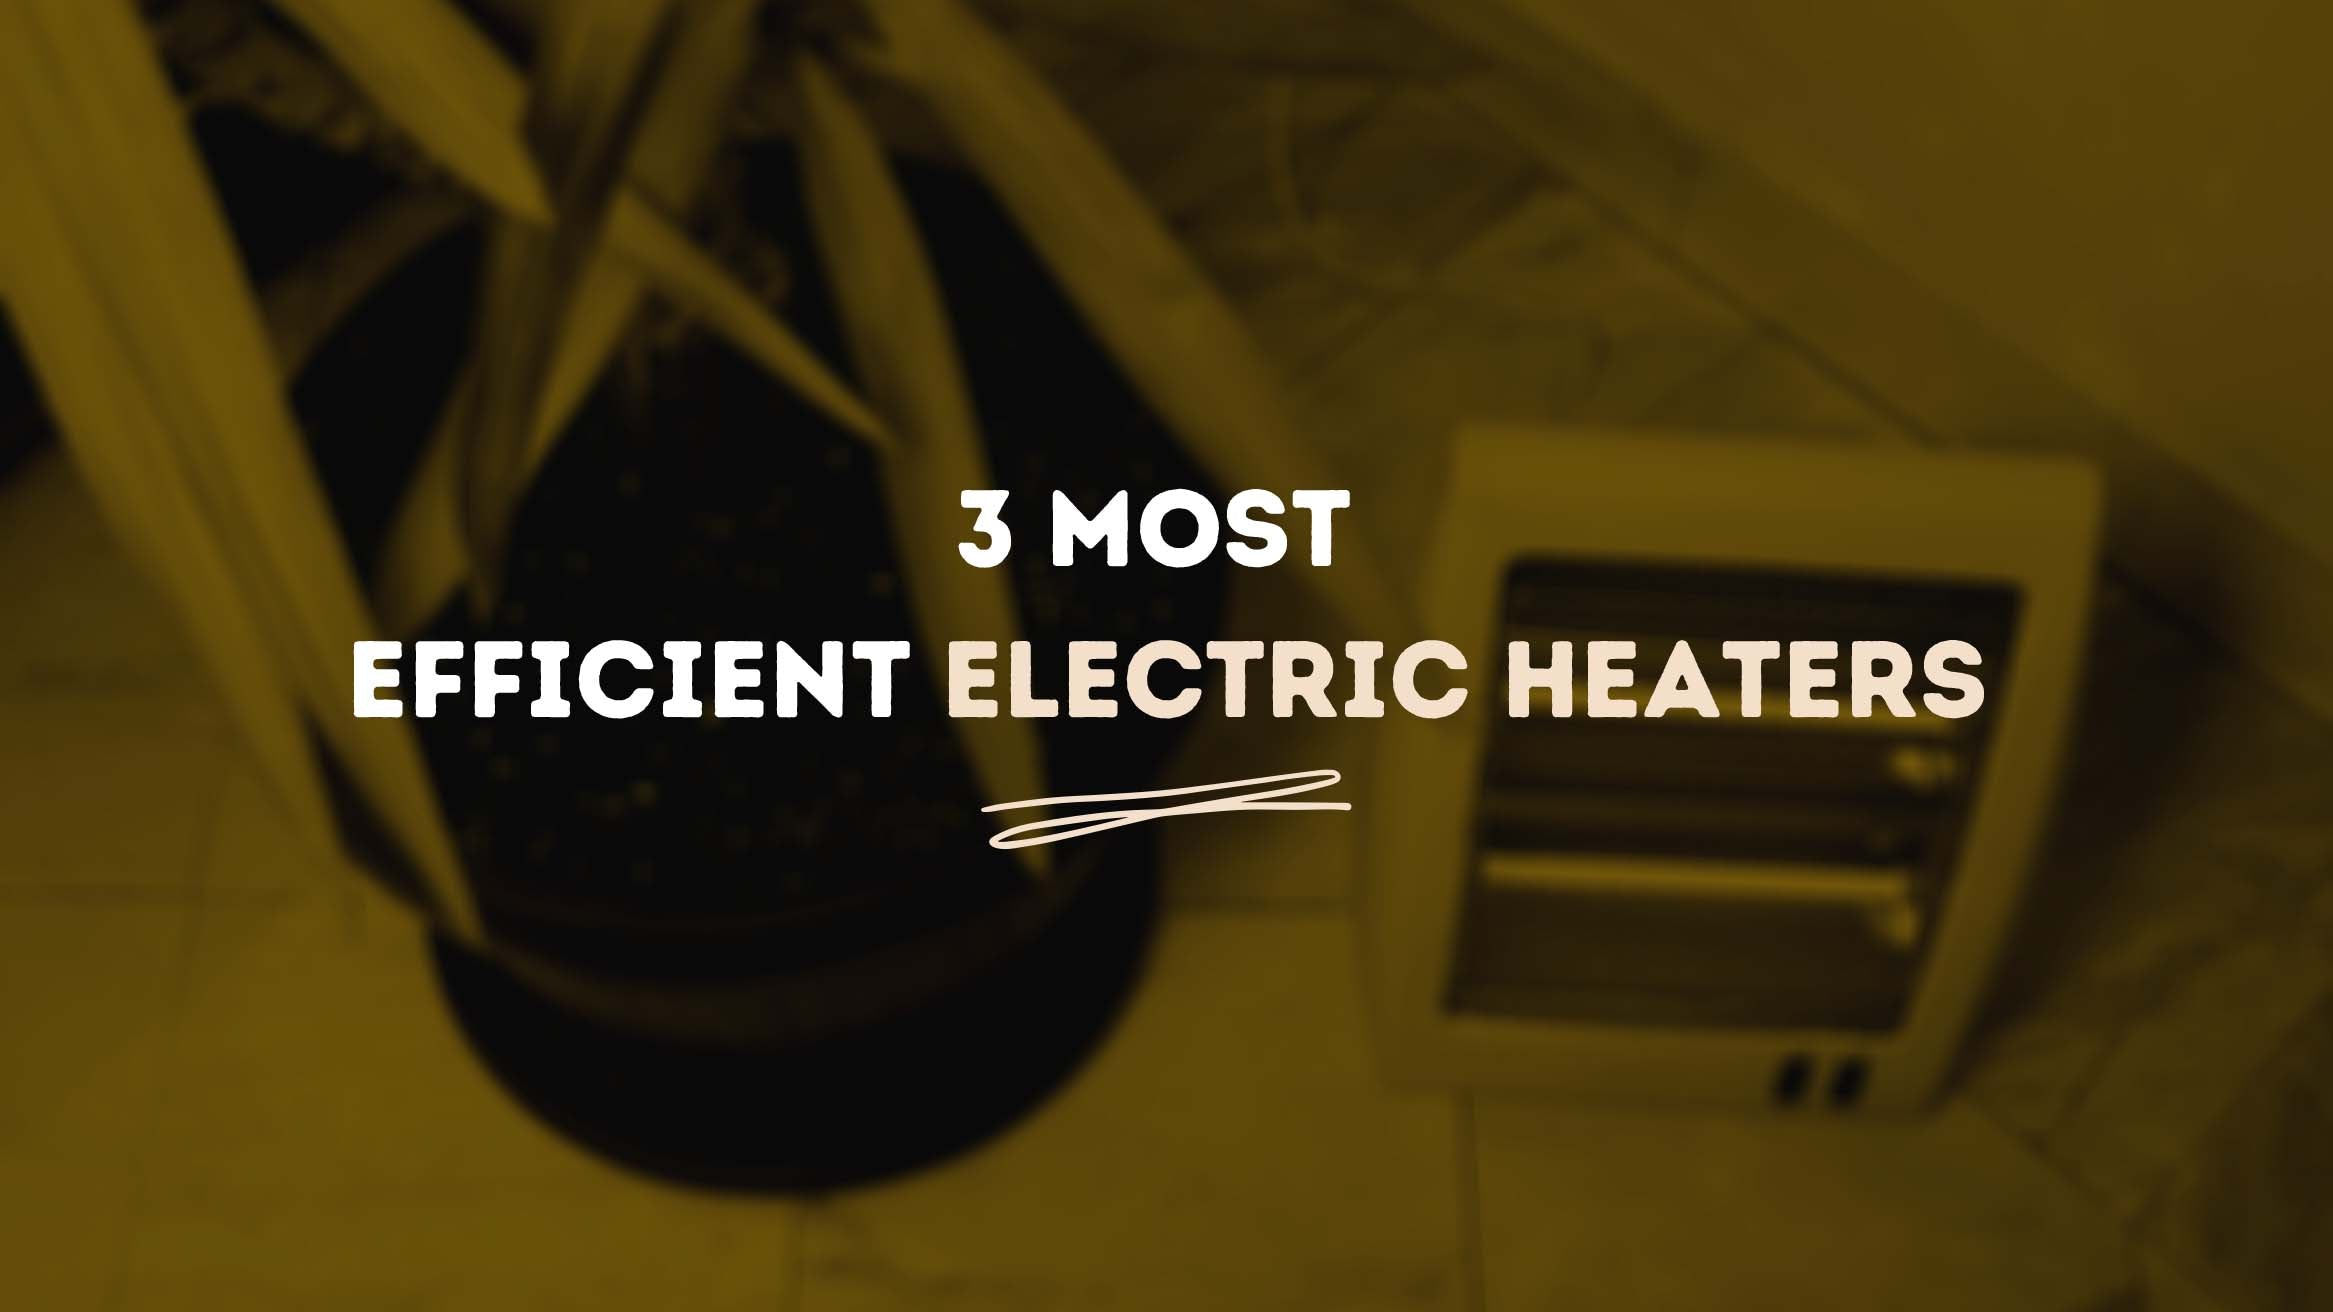 3 most efficient electric heaters - Home Appliances Plus